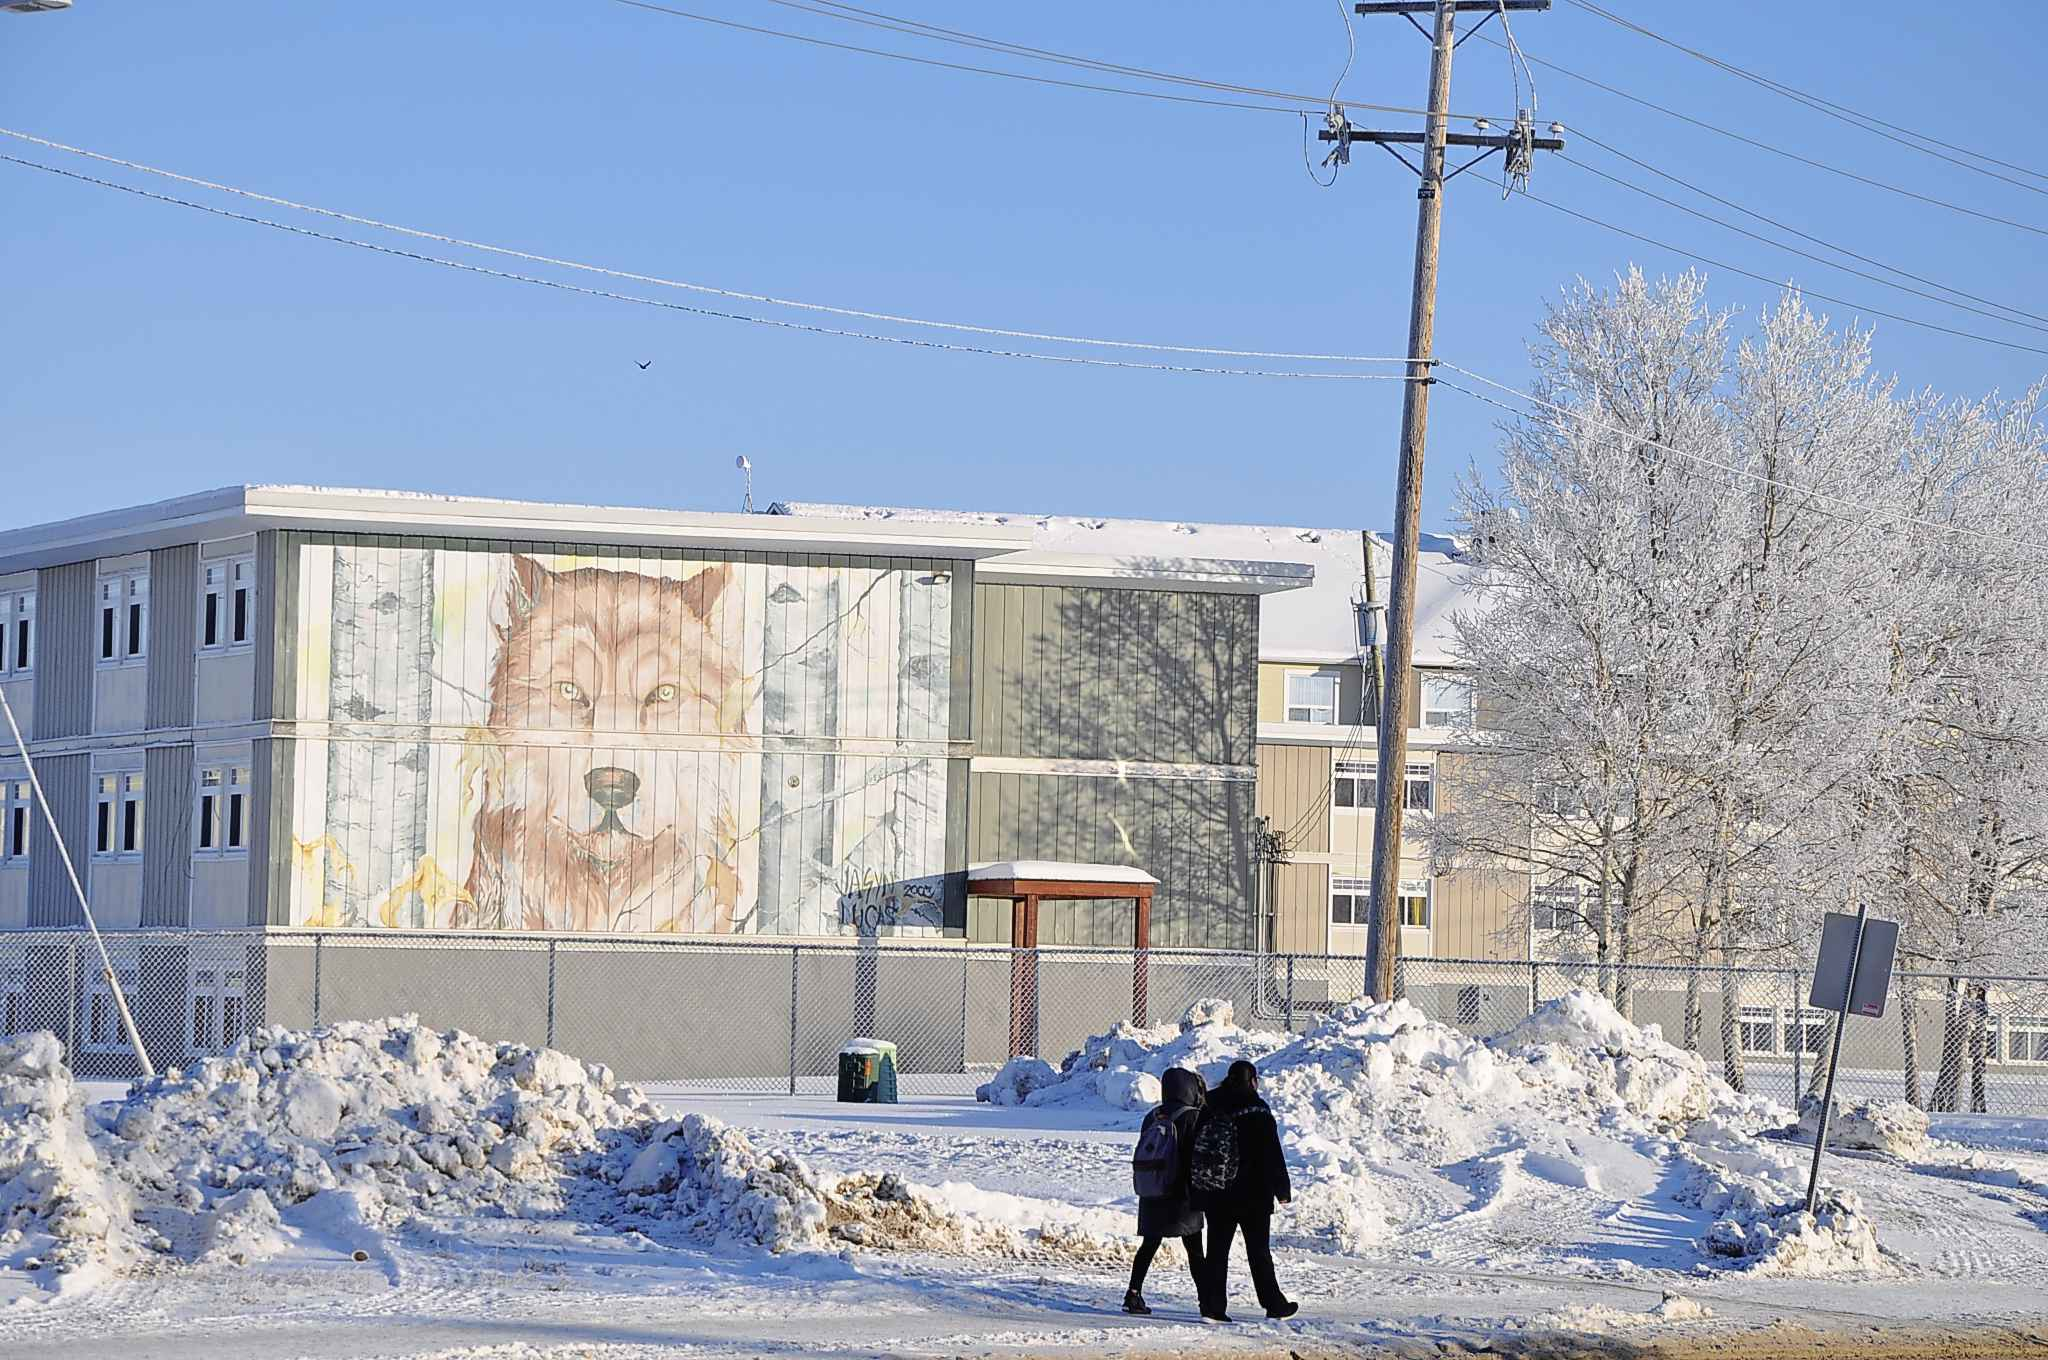 Thompson is the hub of northen Manitoba, but despite its size, it has no provincial jail. (Katie May / Winnipeg Free Press)